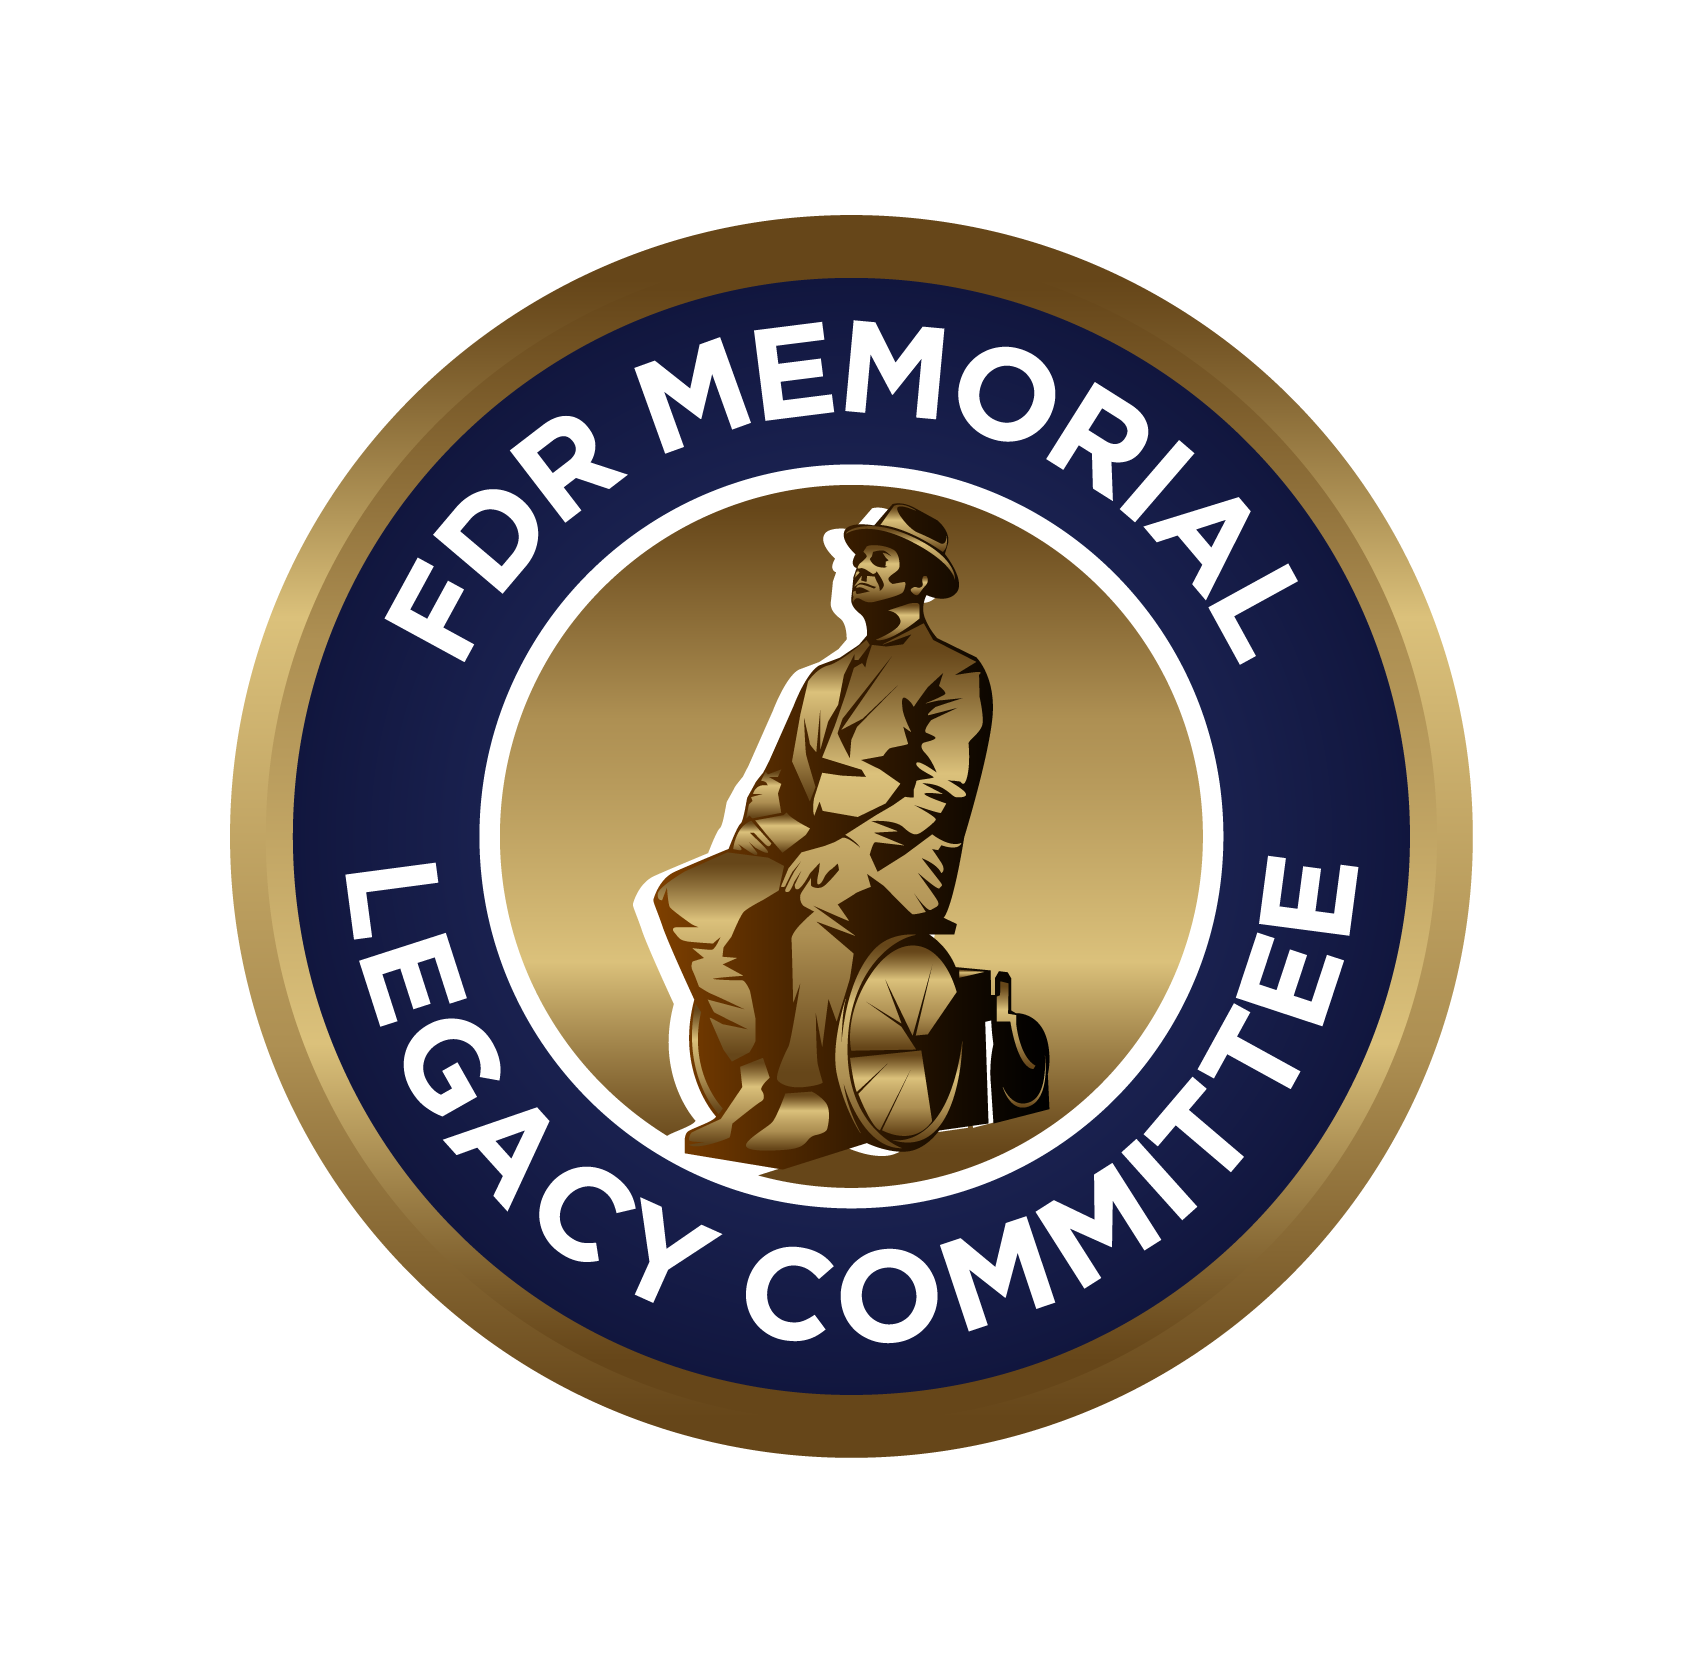 FDR circle logo with FDR wheelchair statue